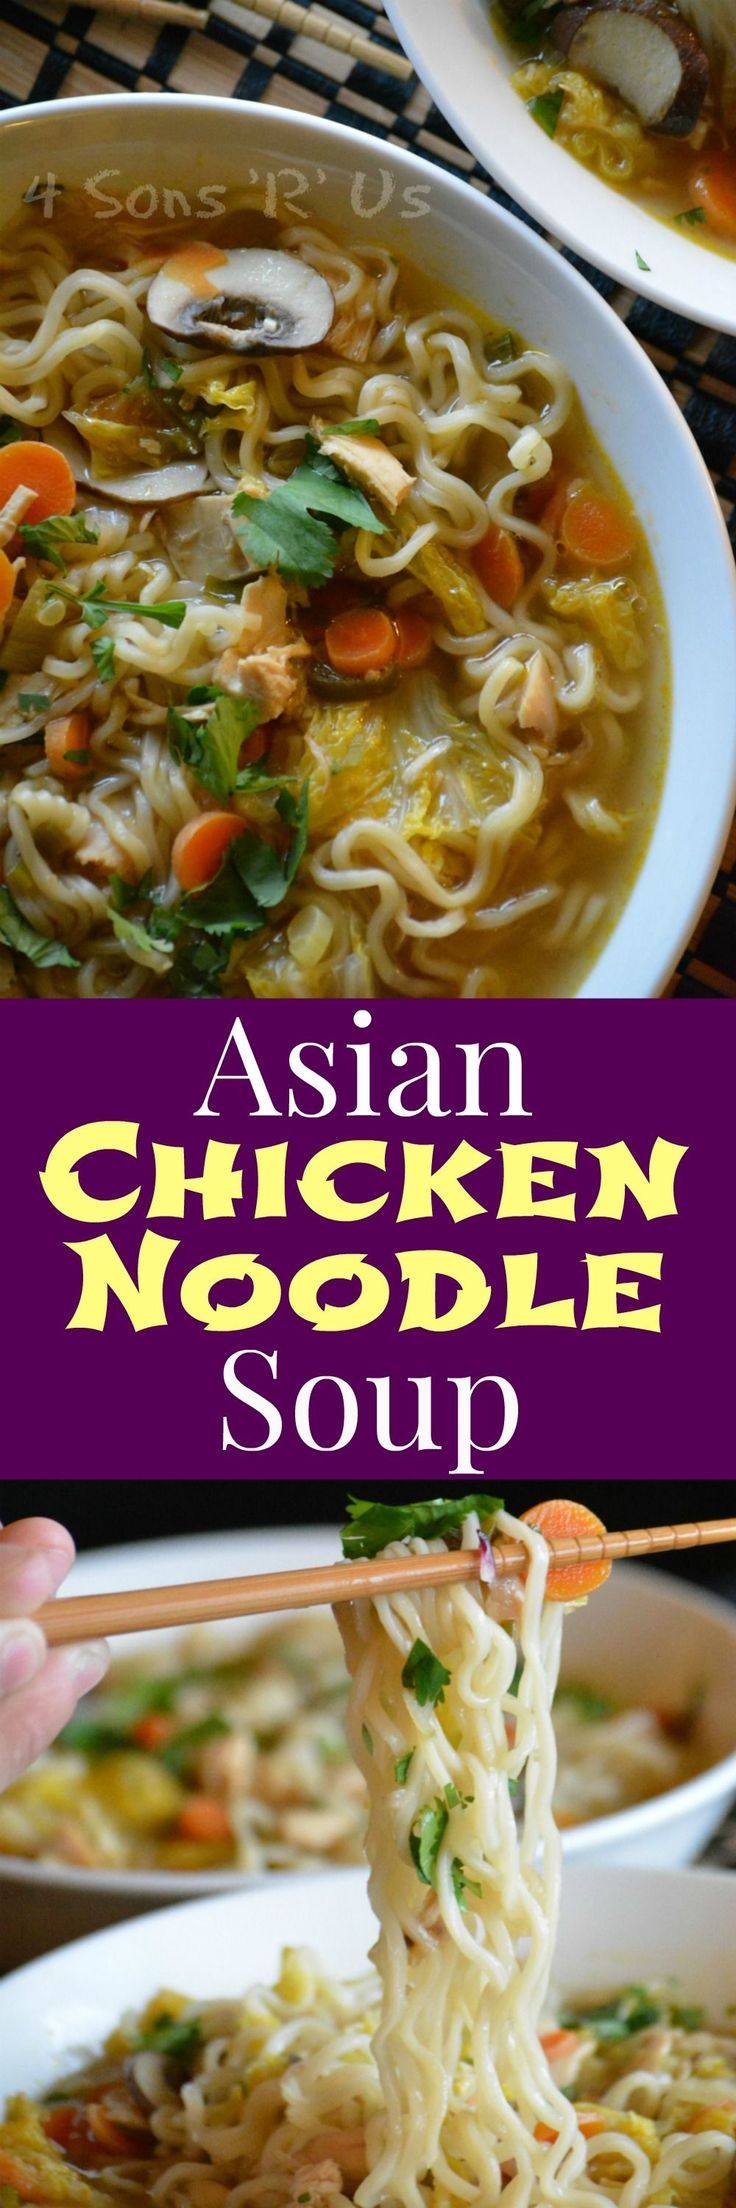 asian-chicken-noodle-soup-pin